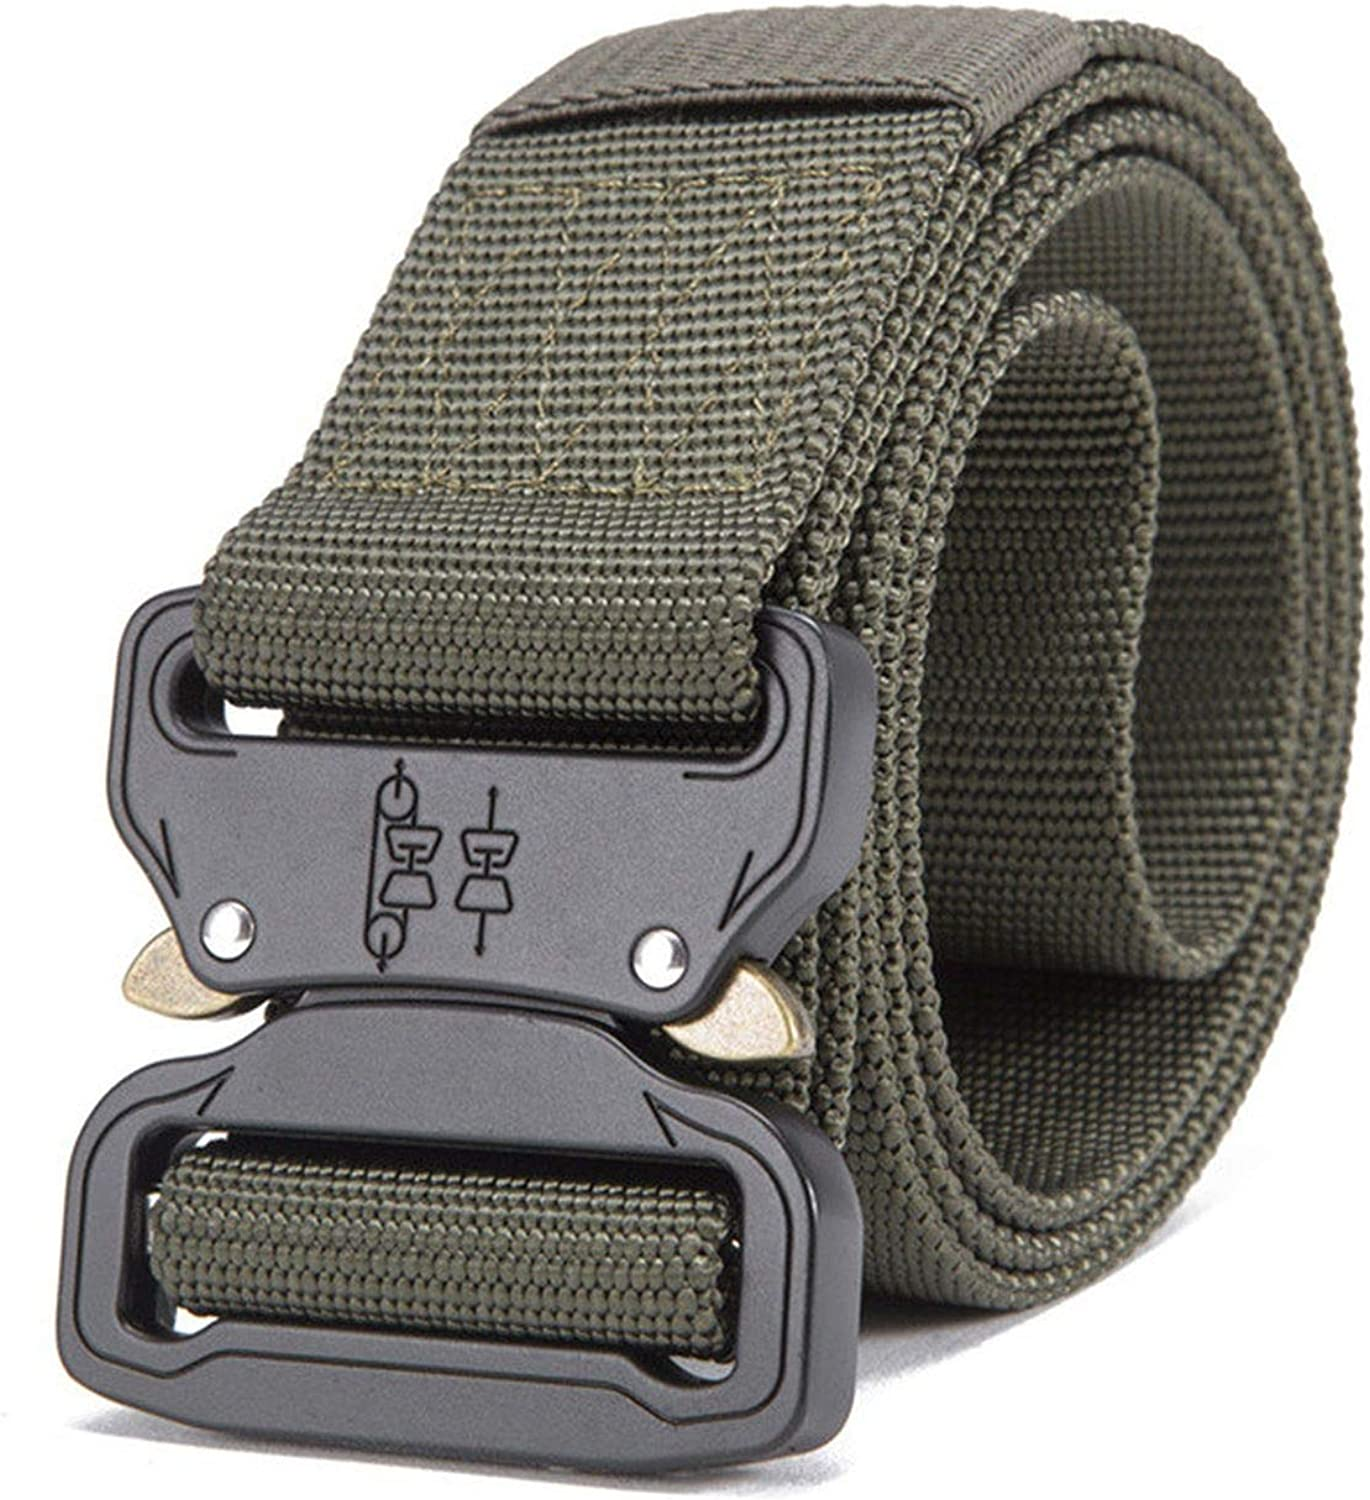 Mens Tactical Belt Military Nylon Belt Outdoor Multifunctional Training Belt Strap Ceintures